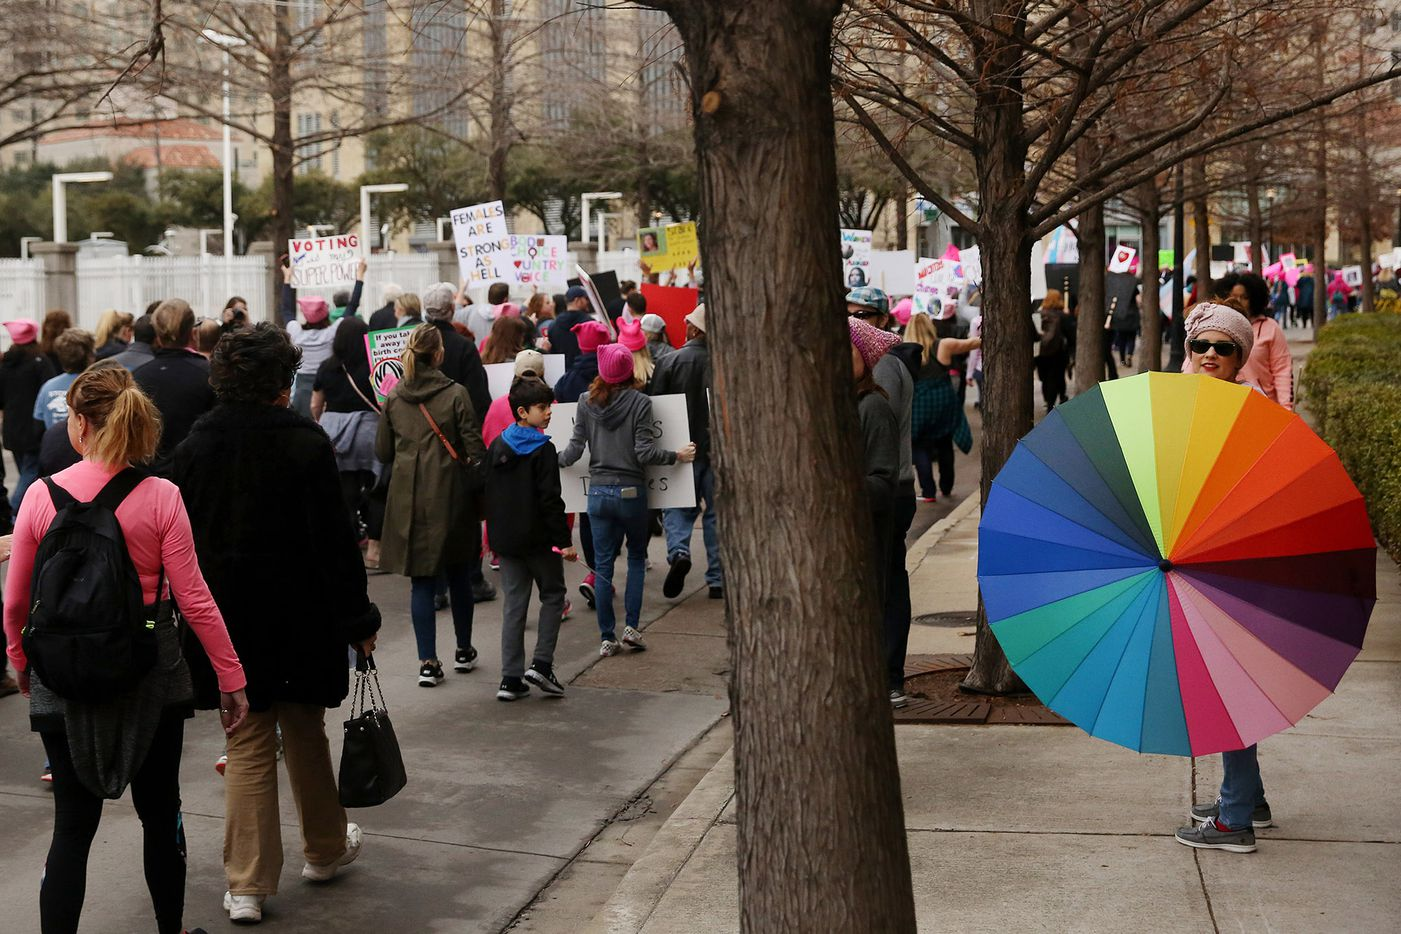 Marchers move Uptown during the Dallas Women's March in Dallas Saturday January 20, 2018. The march started at St. Paul United Methodist Church and ended at Pike Park in Uptown. Three marches took place in Dallas on Saturday, including the North Texas March for Life, Dallas Women's March and the Impeach Trump Solidarity Rally & March.